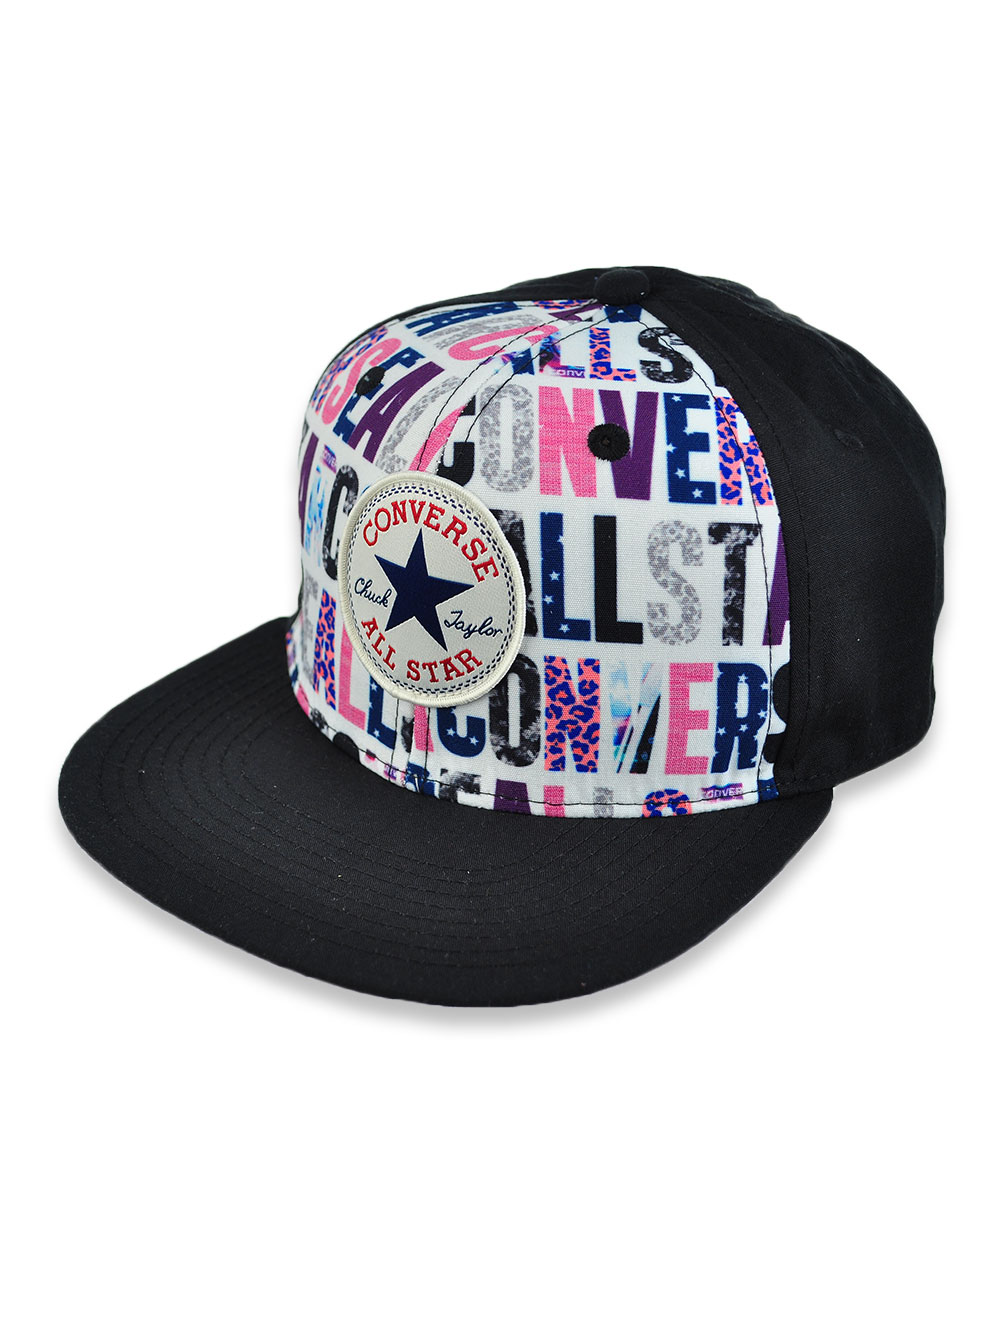 Girls' Snapback Baseball Cap